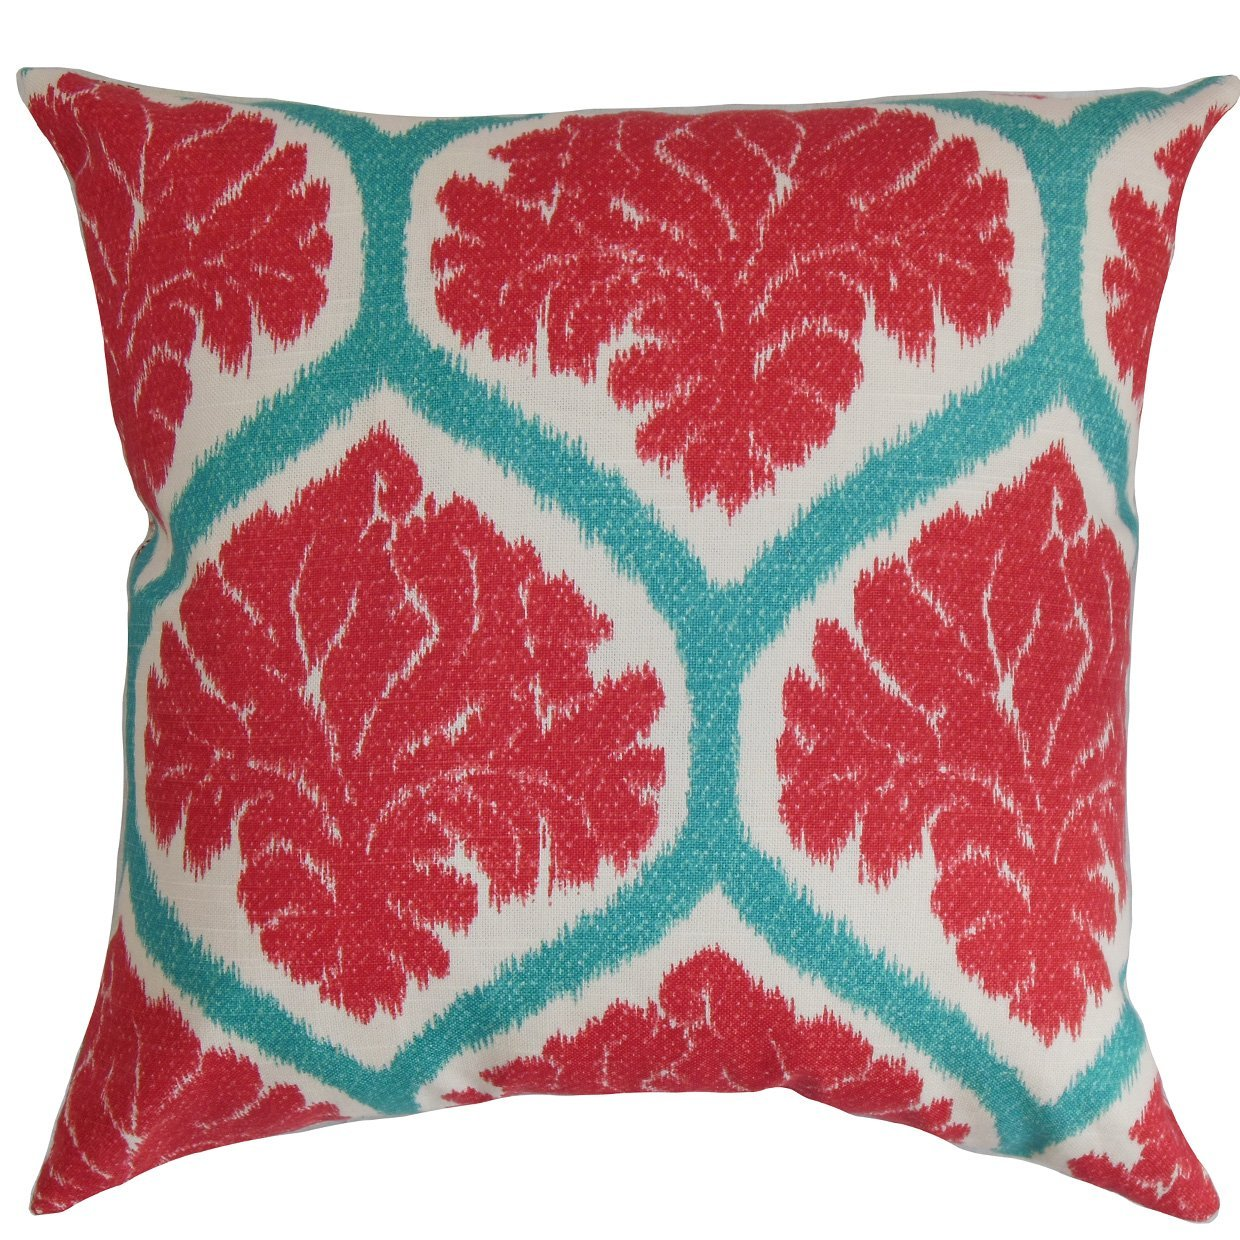 The Pillow Collection Priya Floral Bedding Sham Poppy Red European//26 x 26